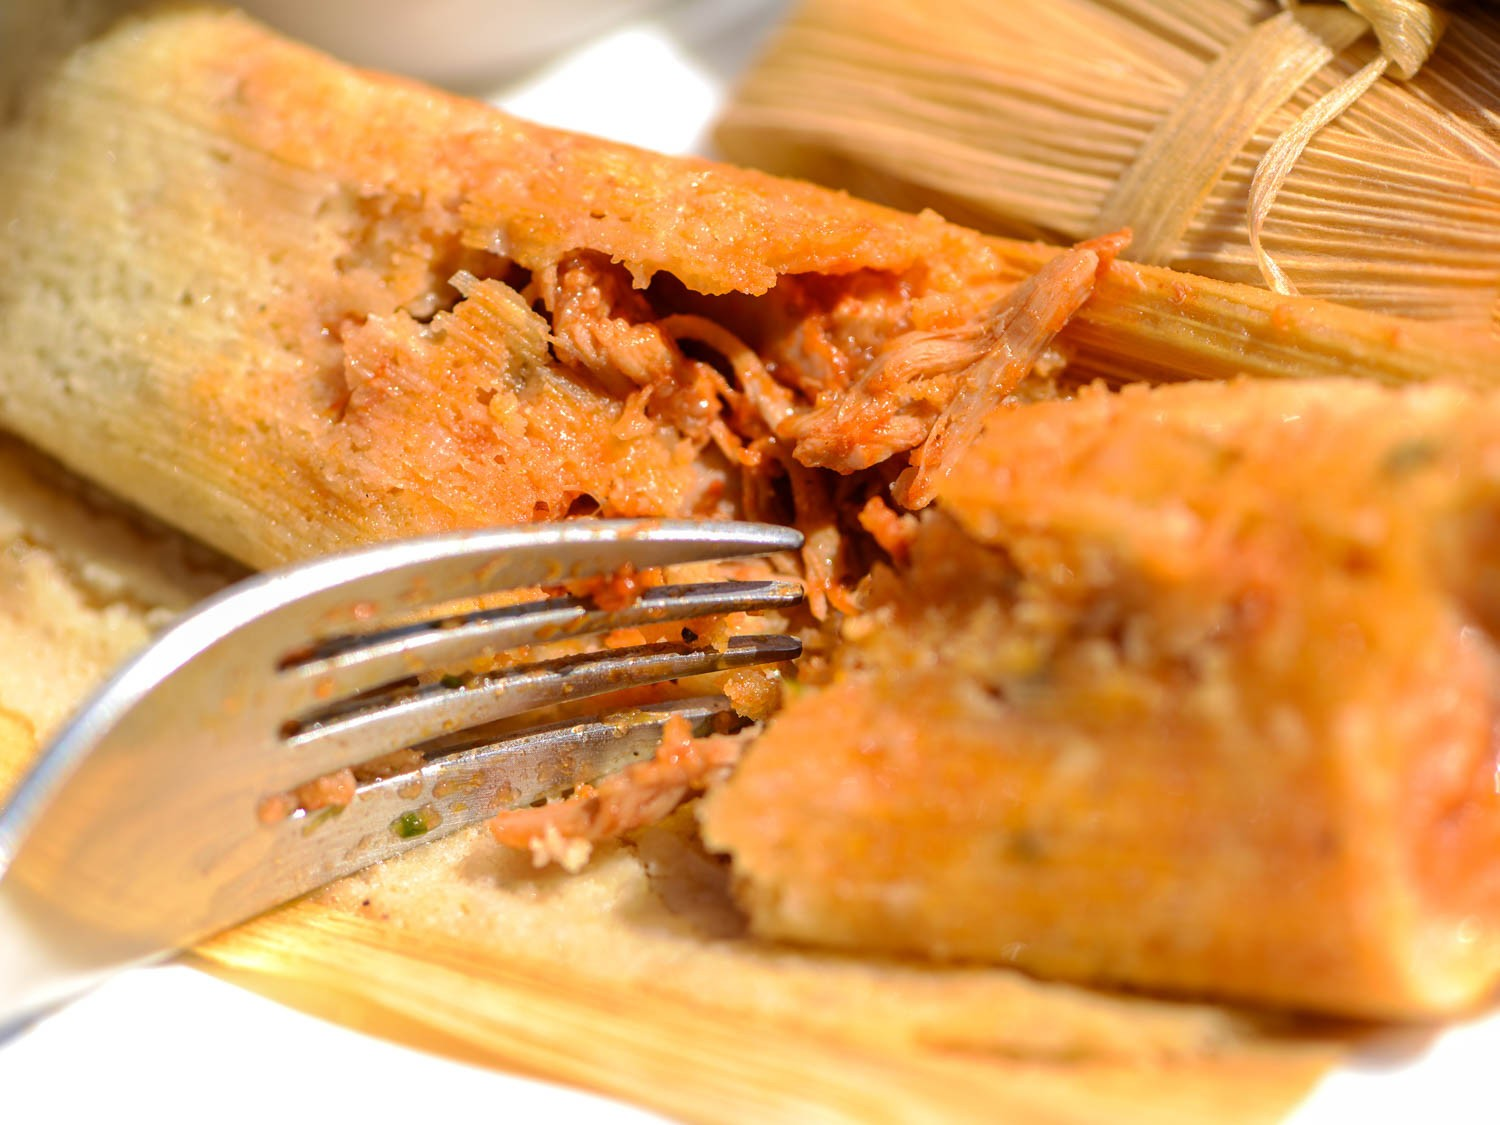 20150429-tamales-red-chili-joshua-bousel